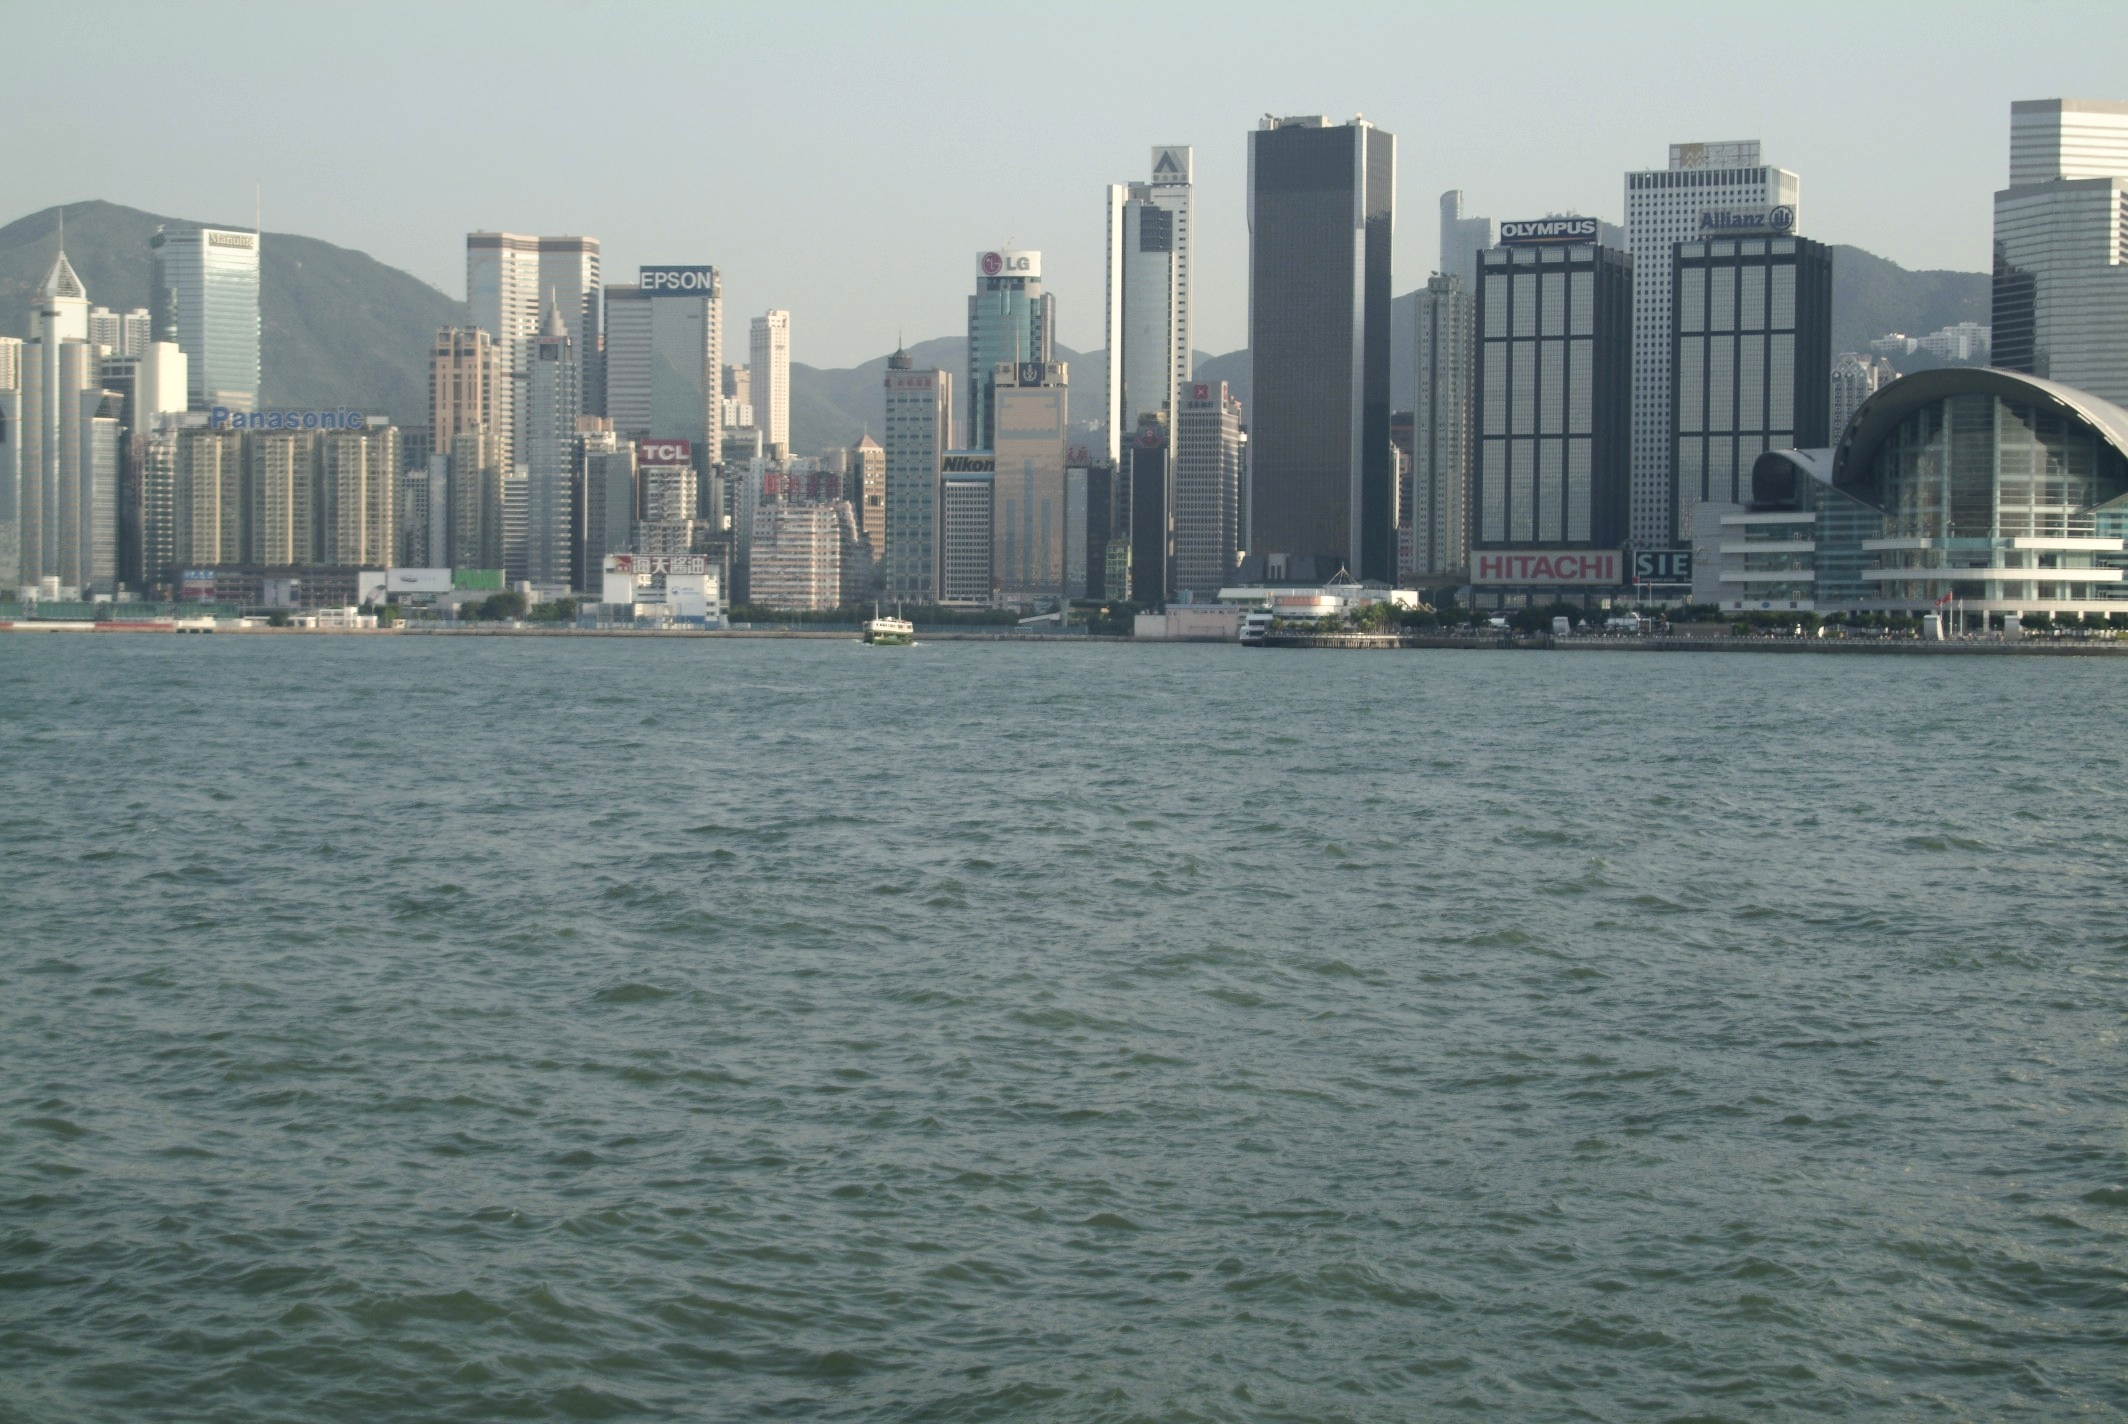 Hong Kong from the harbor